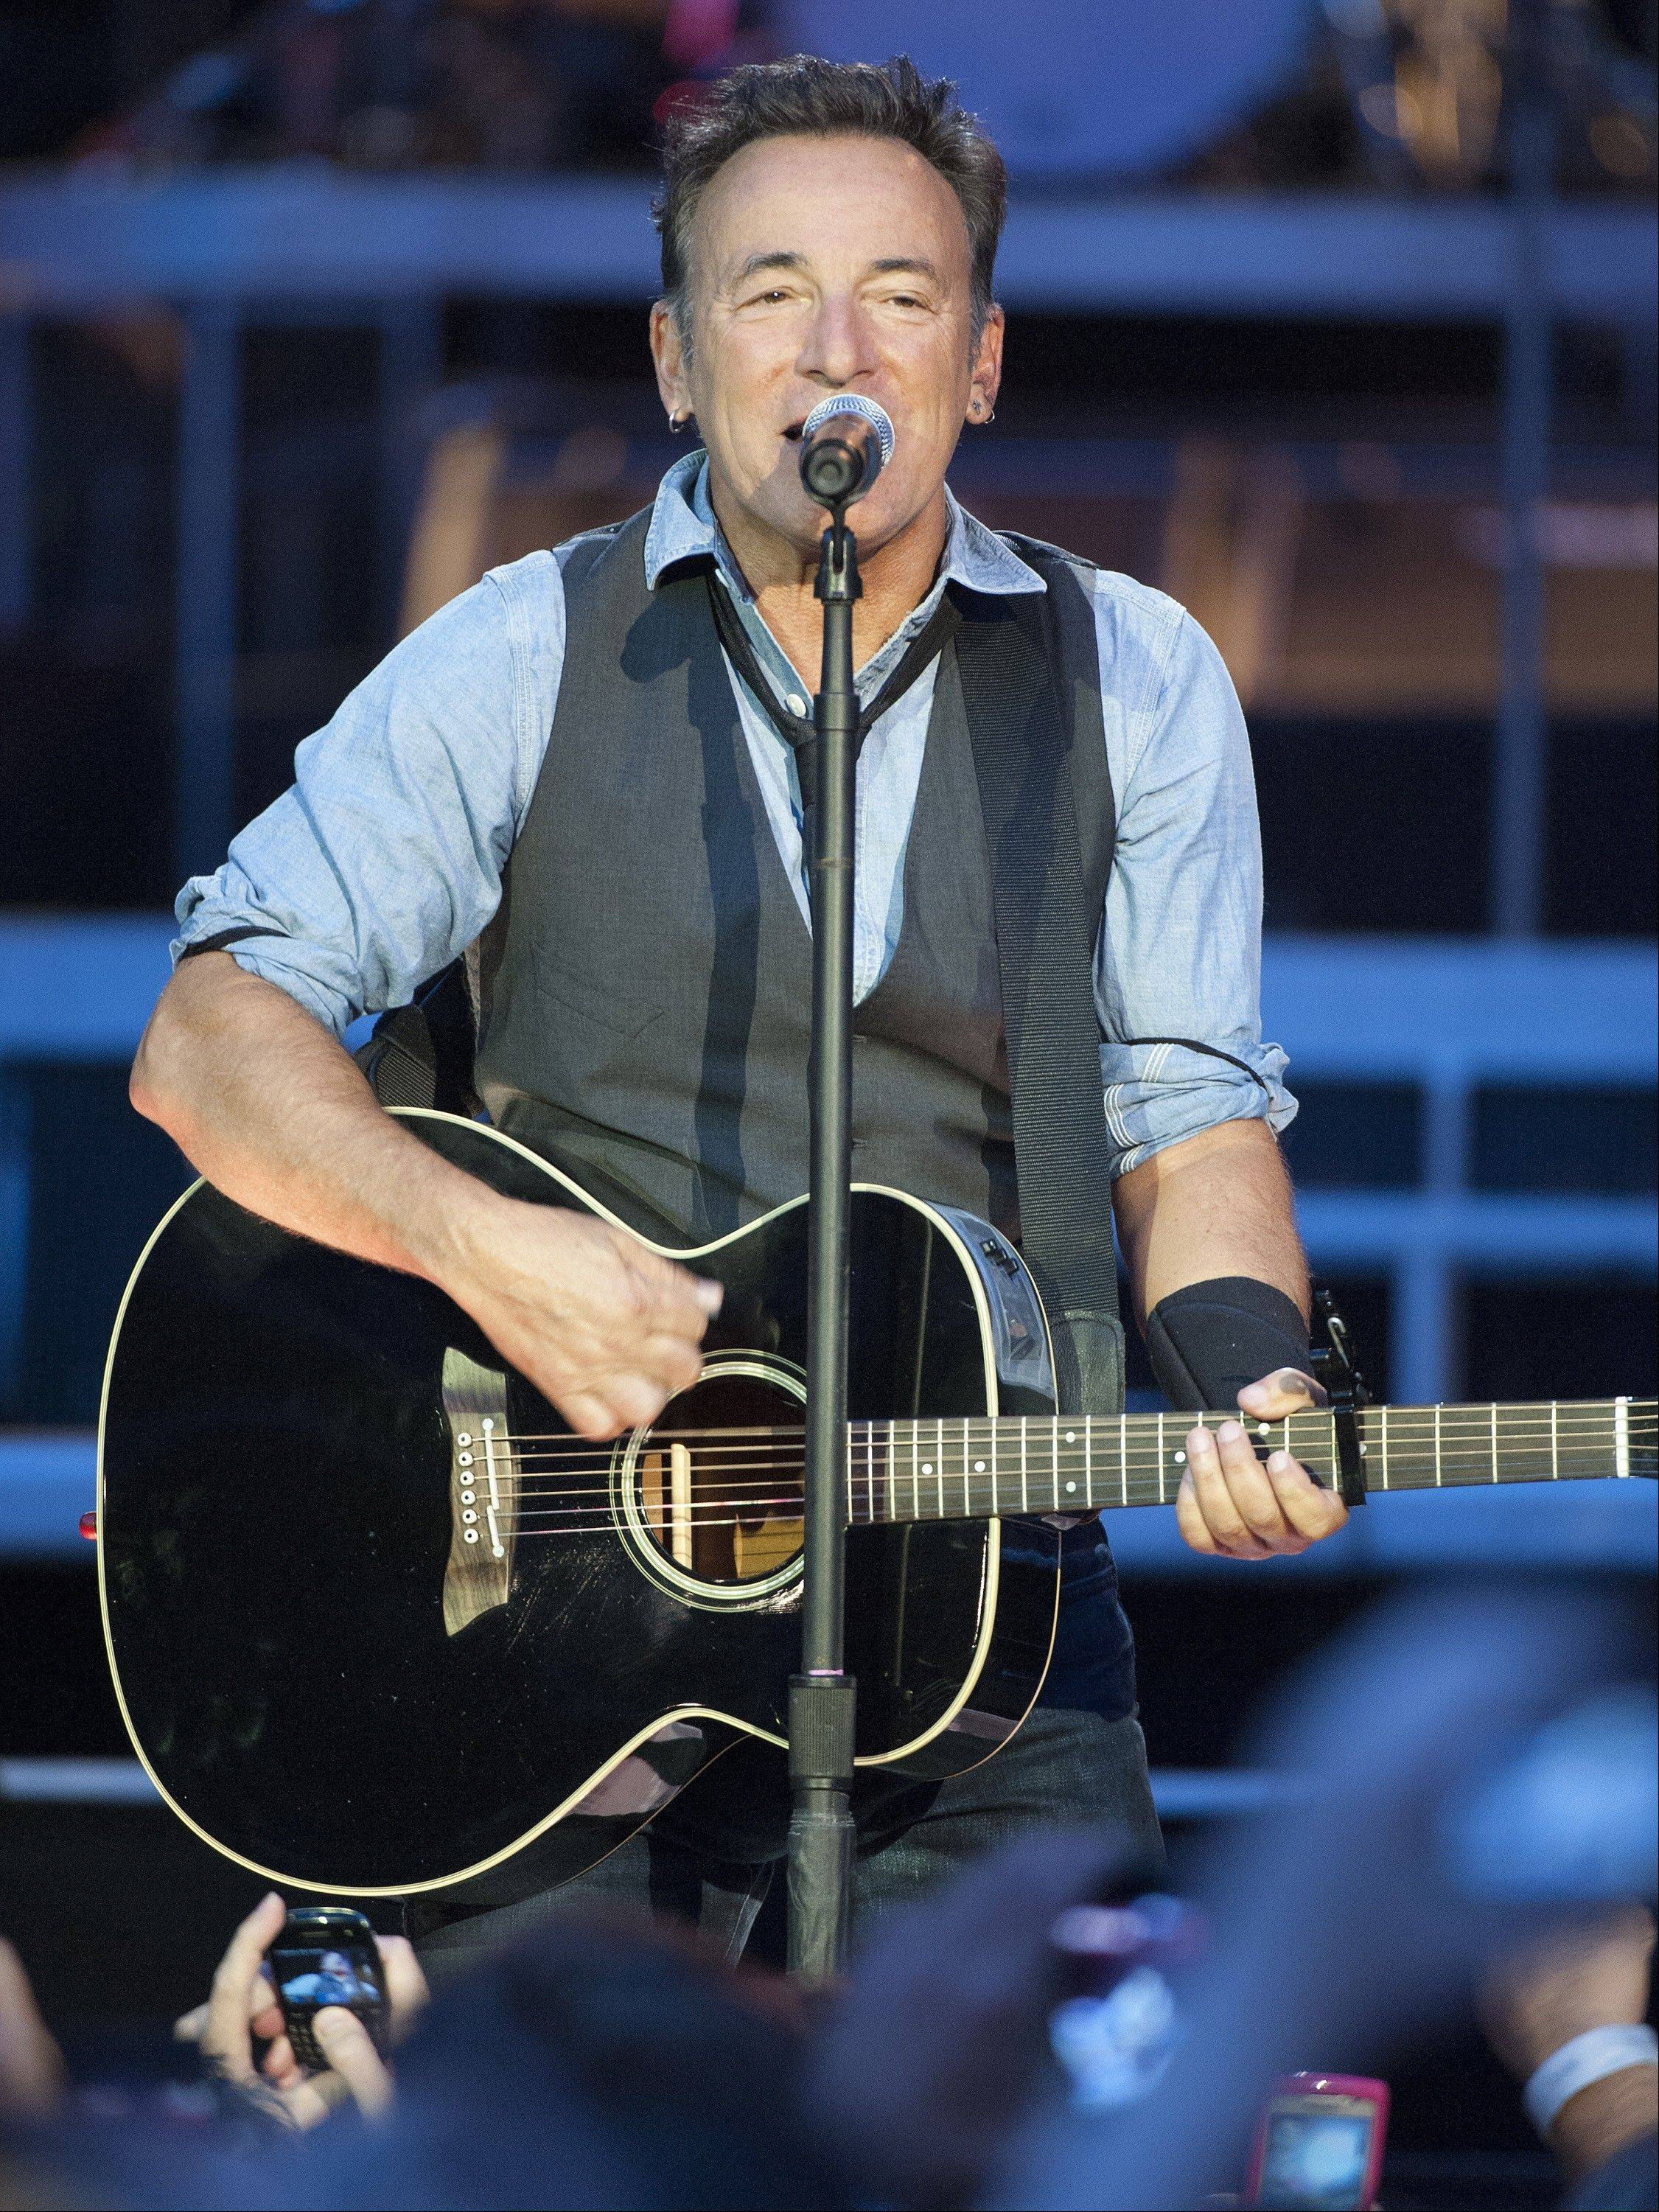 Bruce Springsteen & The E Street Band bring the Wrecking Ball Tour to Wrigley Field this weekend.